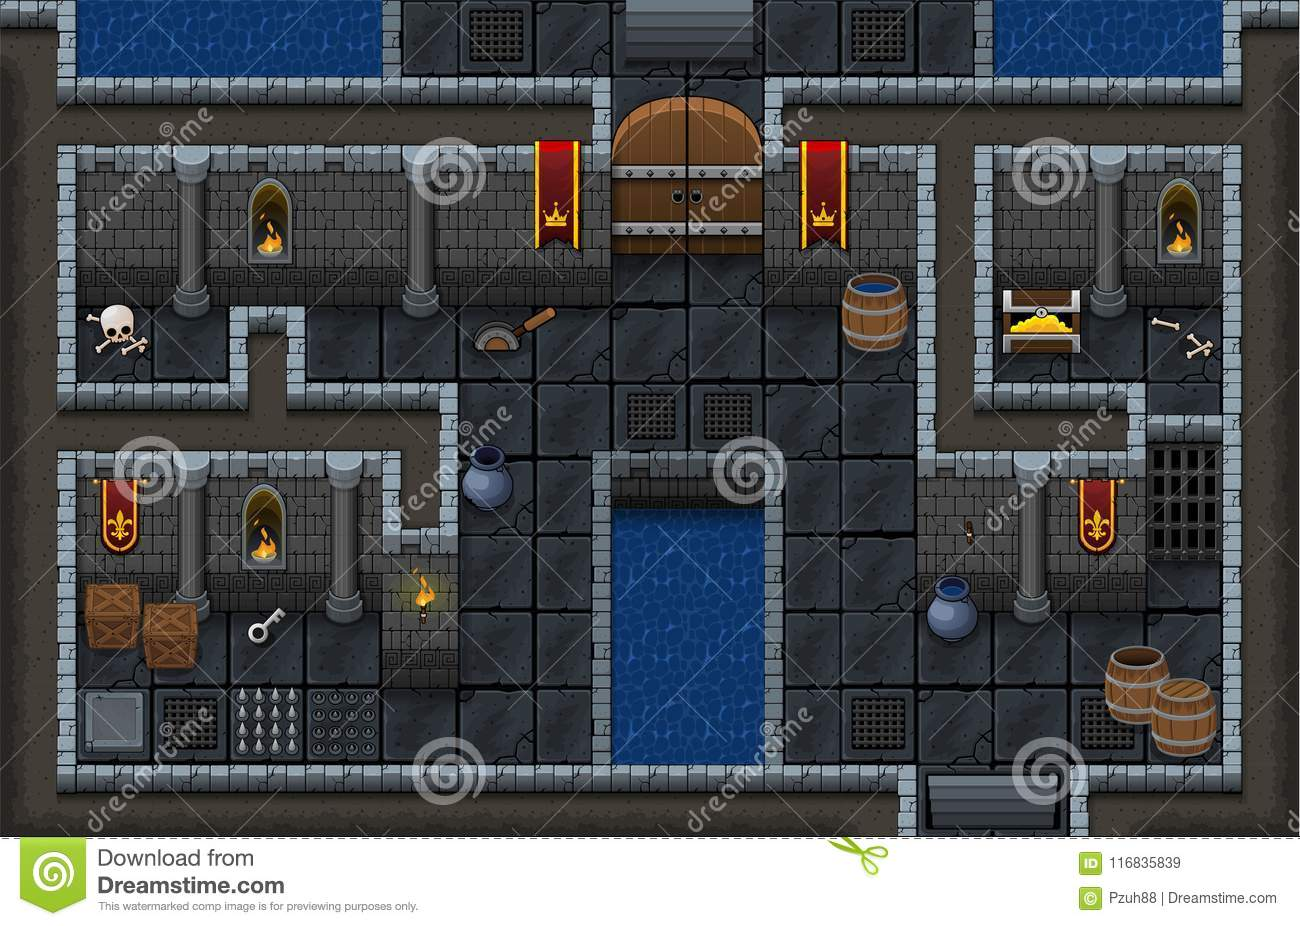 16X16 Tileset gooddesign: farmhouse floor tile